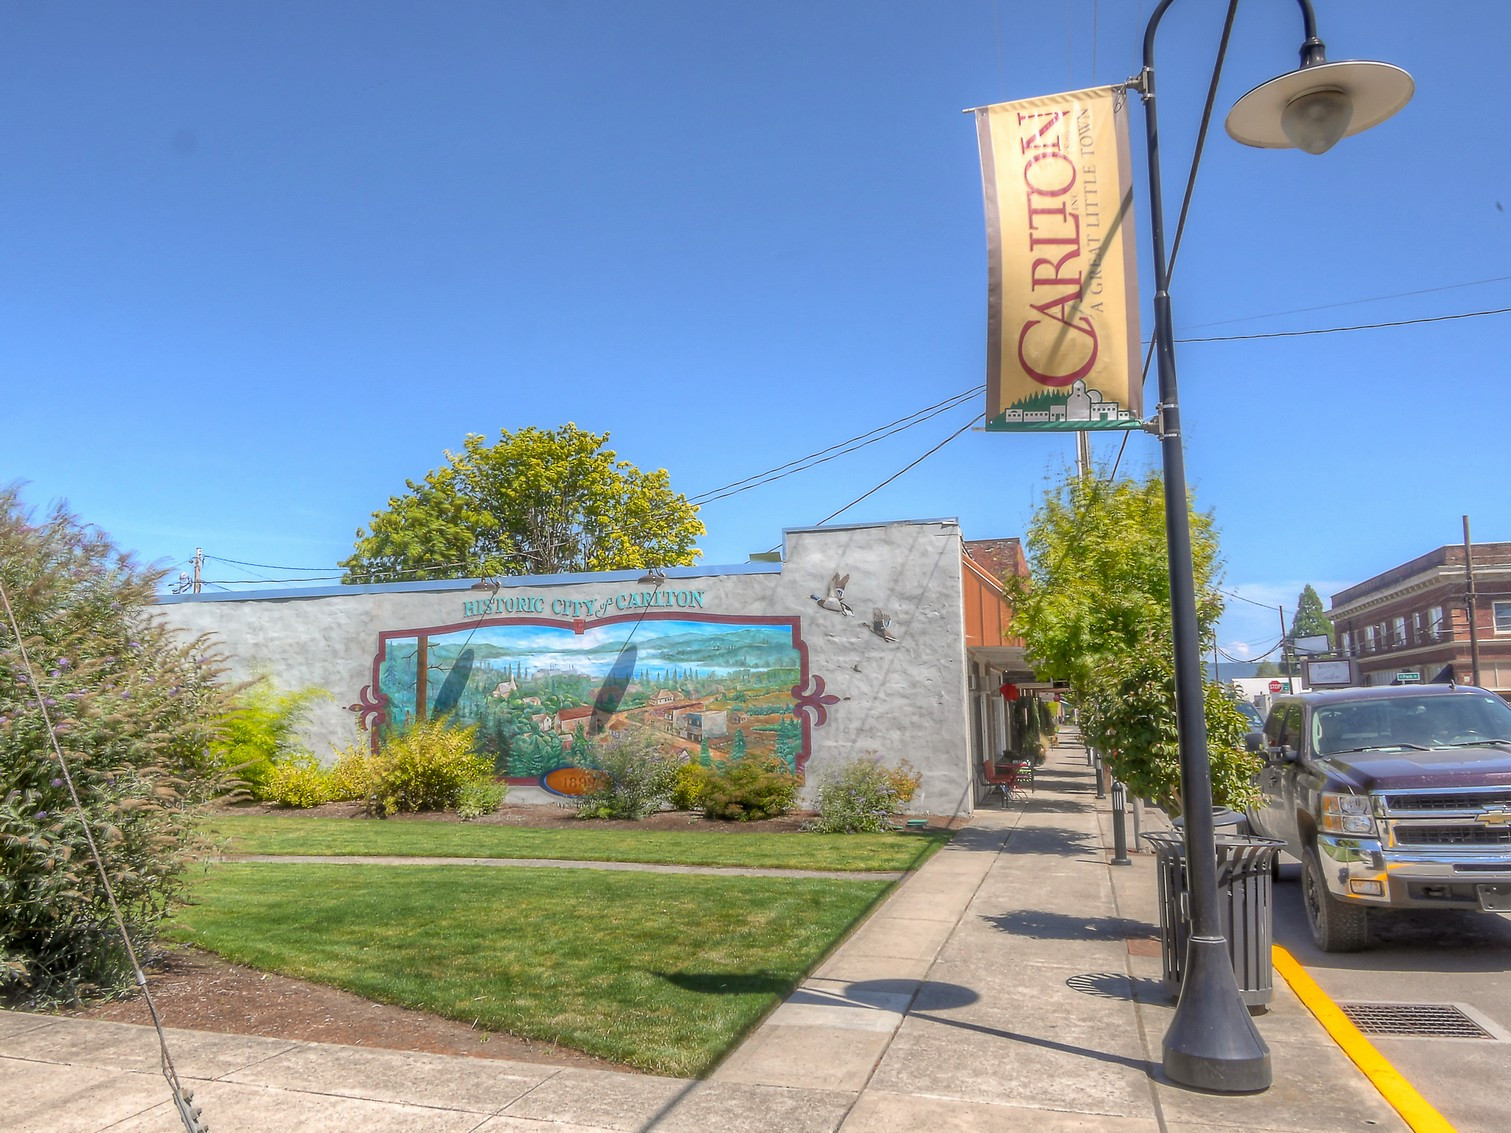 11-historic-city-of-carlton-oregon-the-kelly-group-real-estate